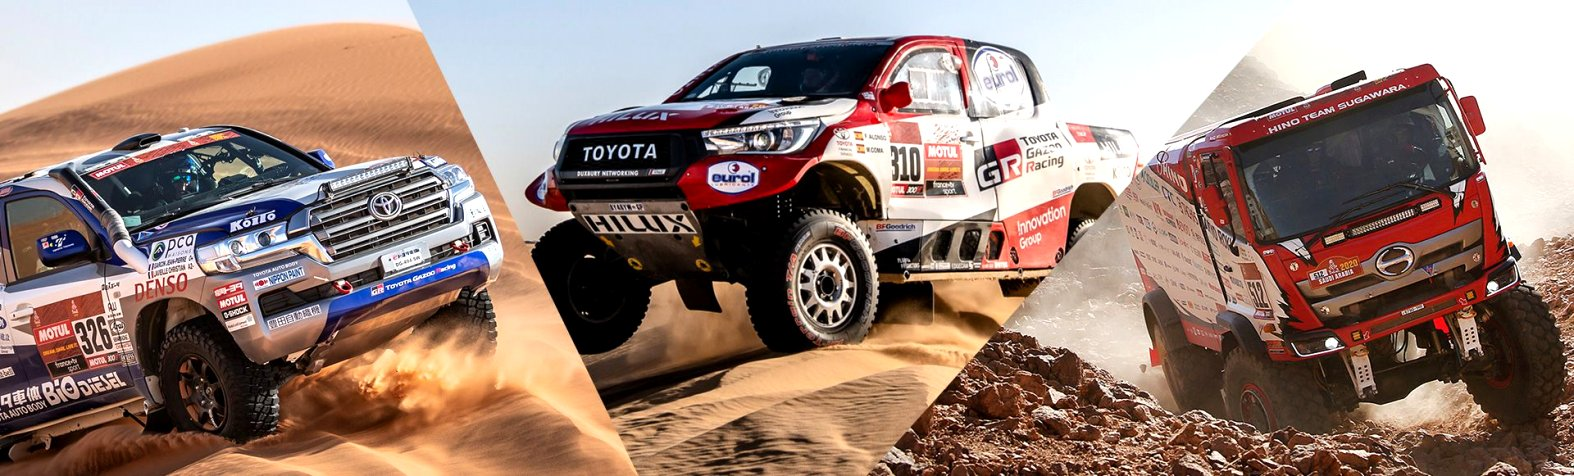 2020 toyota dakar Release Date and Concept